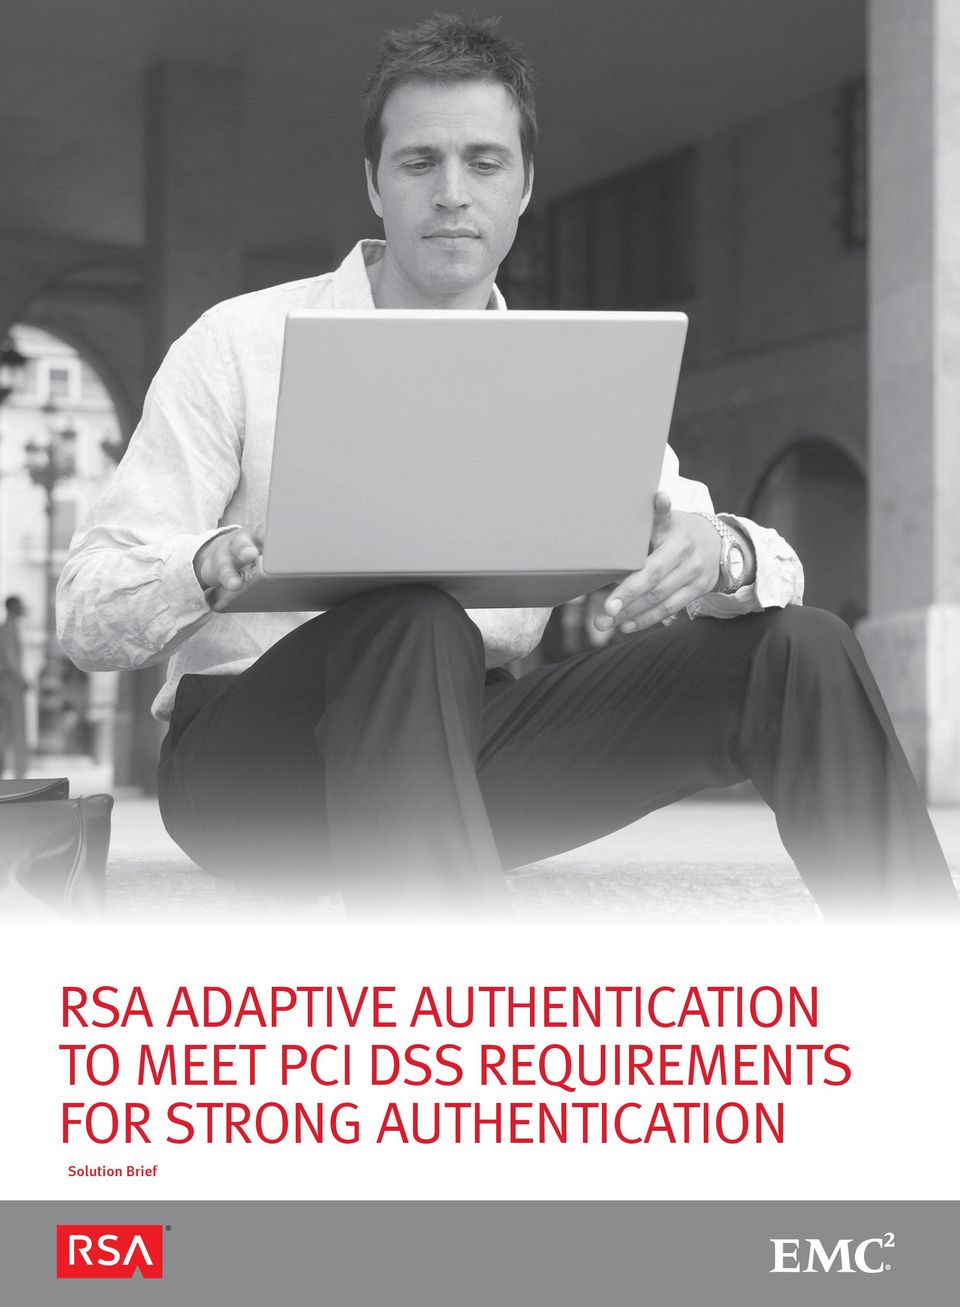 PCI DSS REQUIREMENTS FOR